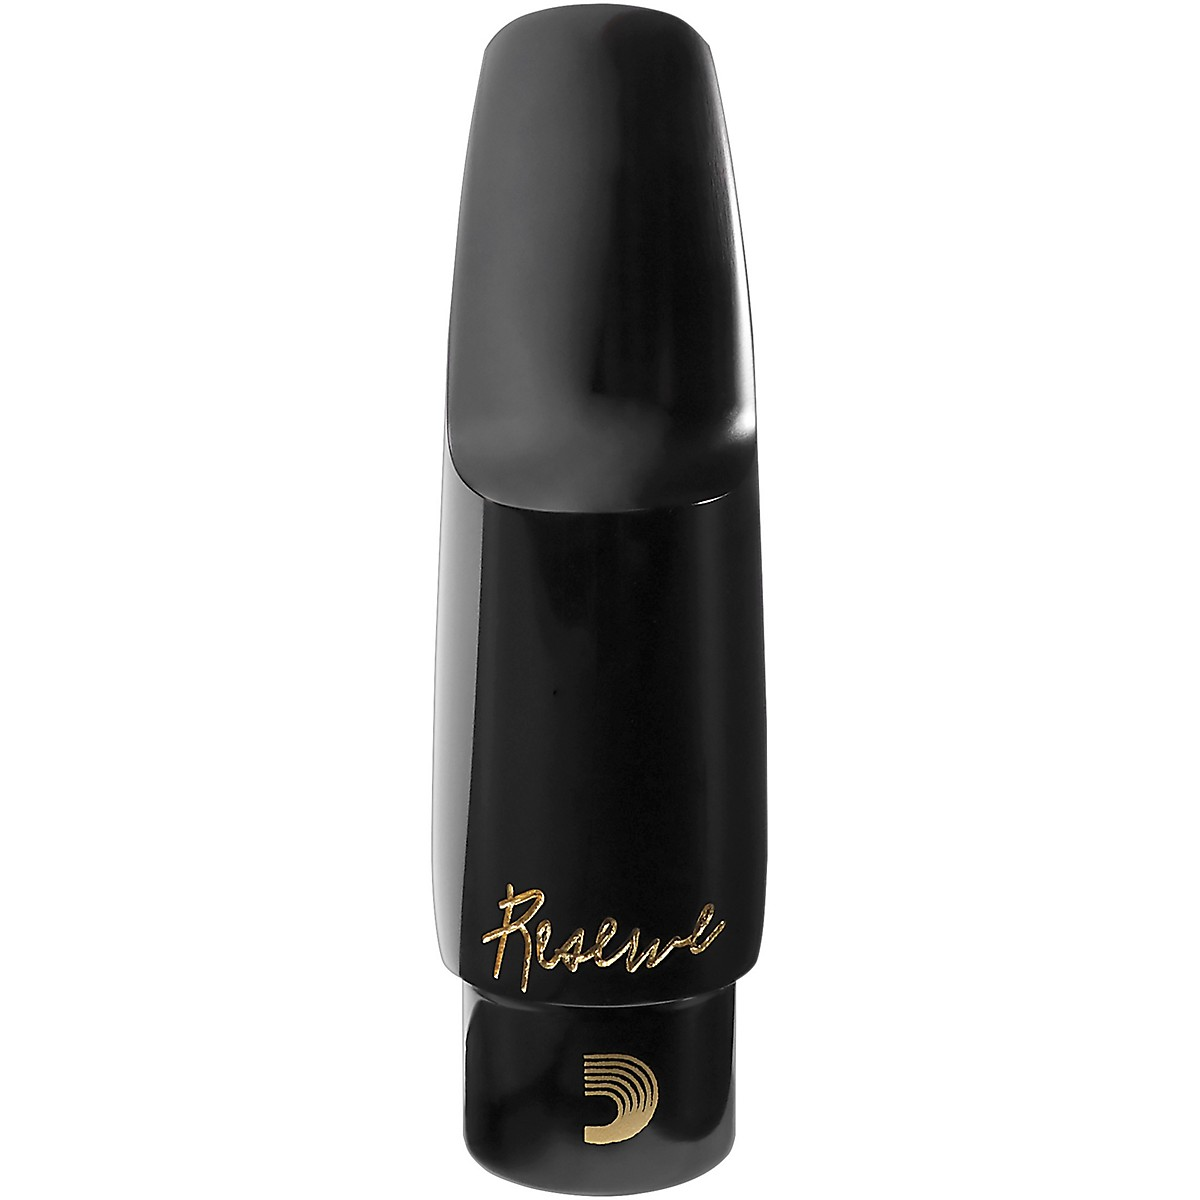 D'Addario Woodwinds Reserve Alto Saxophone Mouthpiece